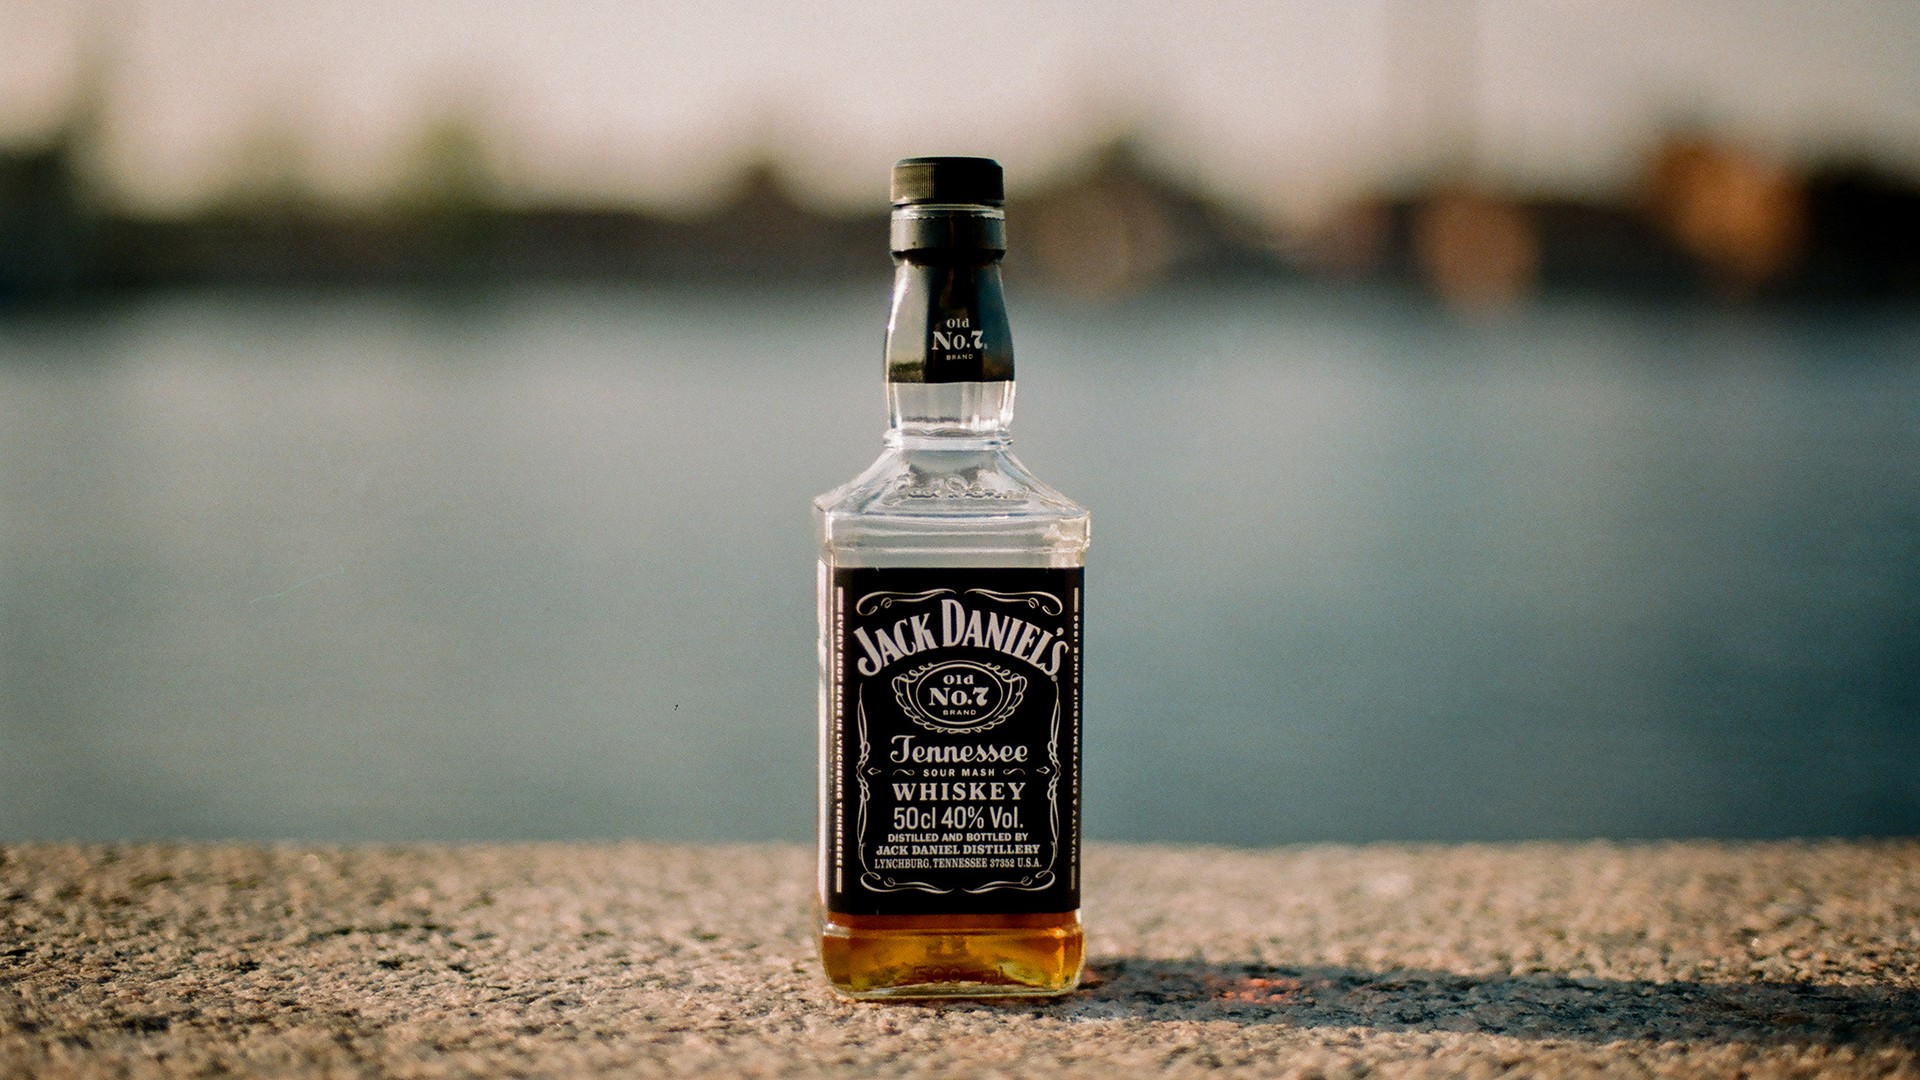 whisky 1080p wallpapers hd - photo #20